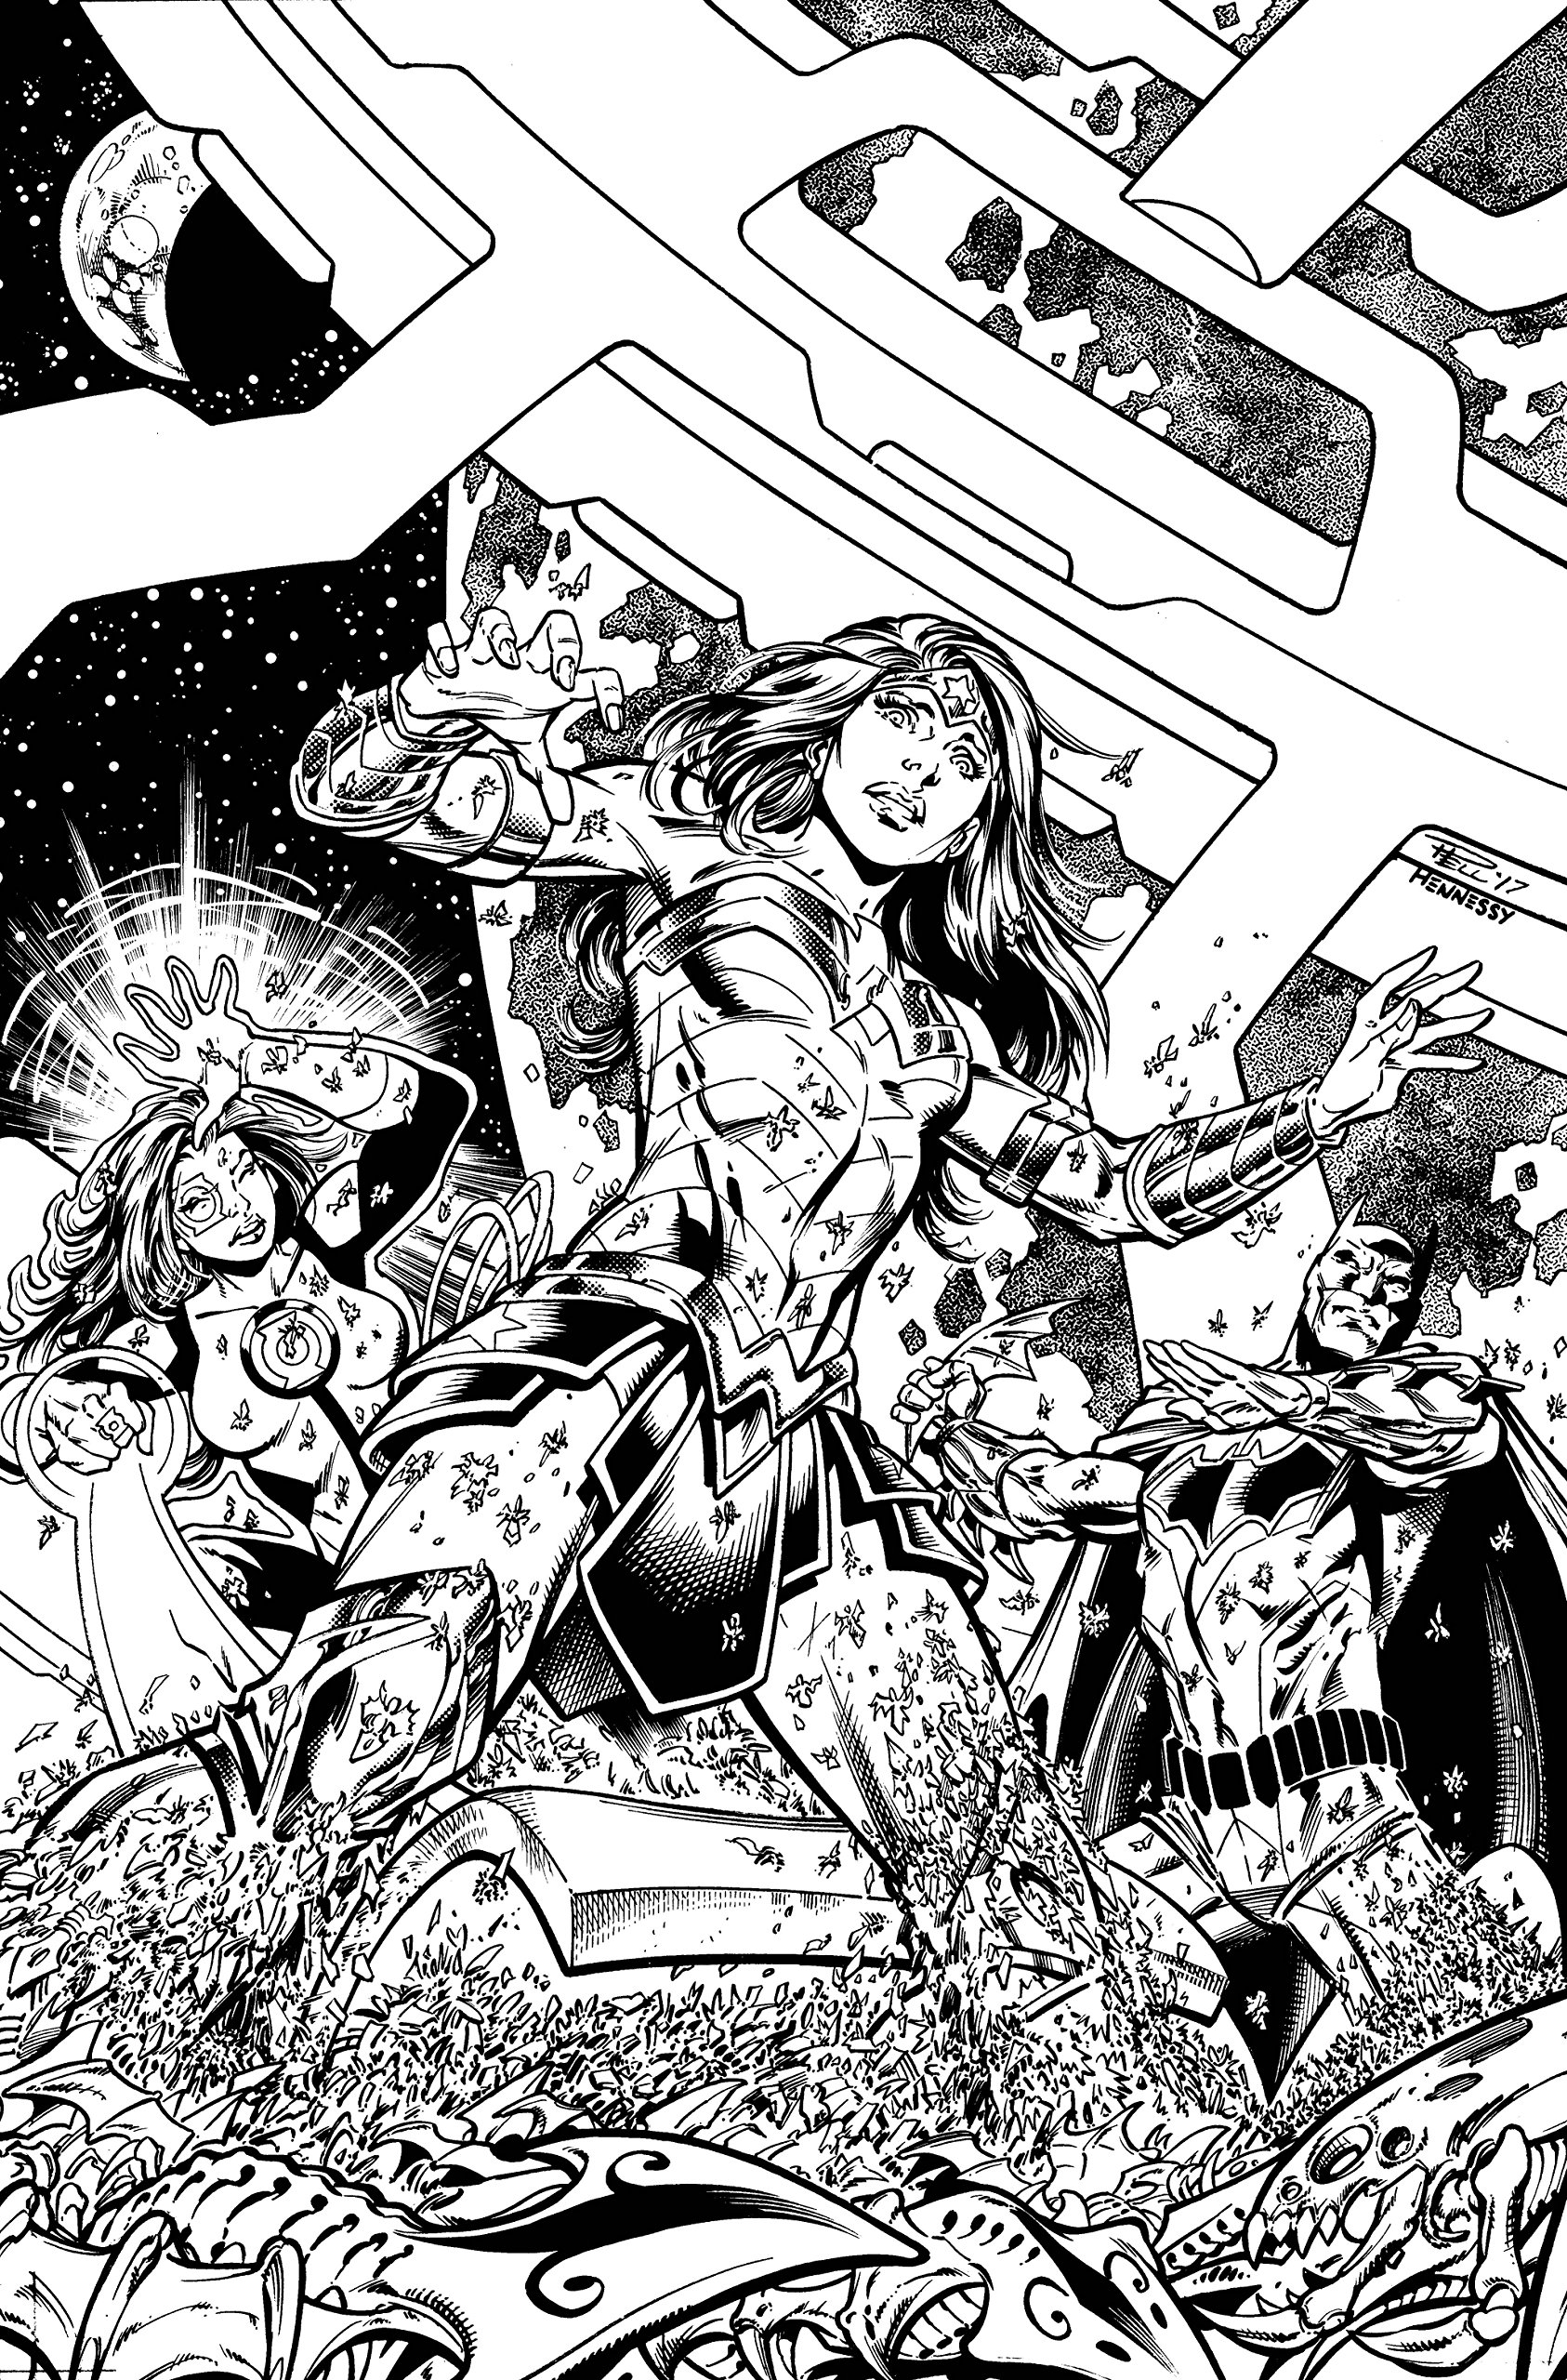 JUSTICE LEAGUE #22 (Reg Cvr, Likely In Color) pdf